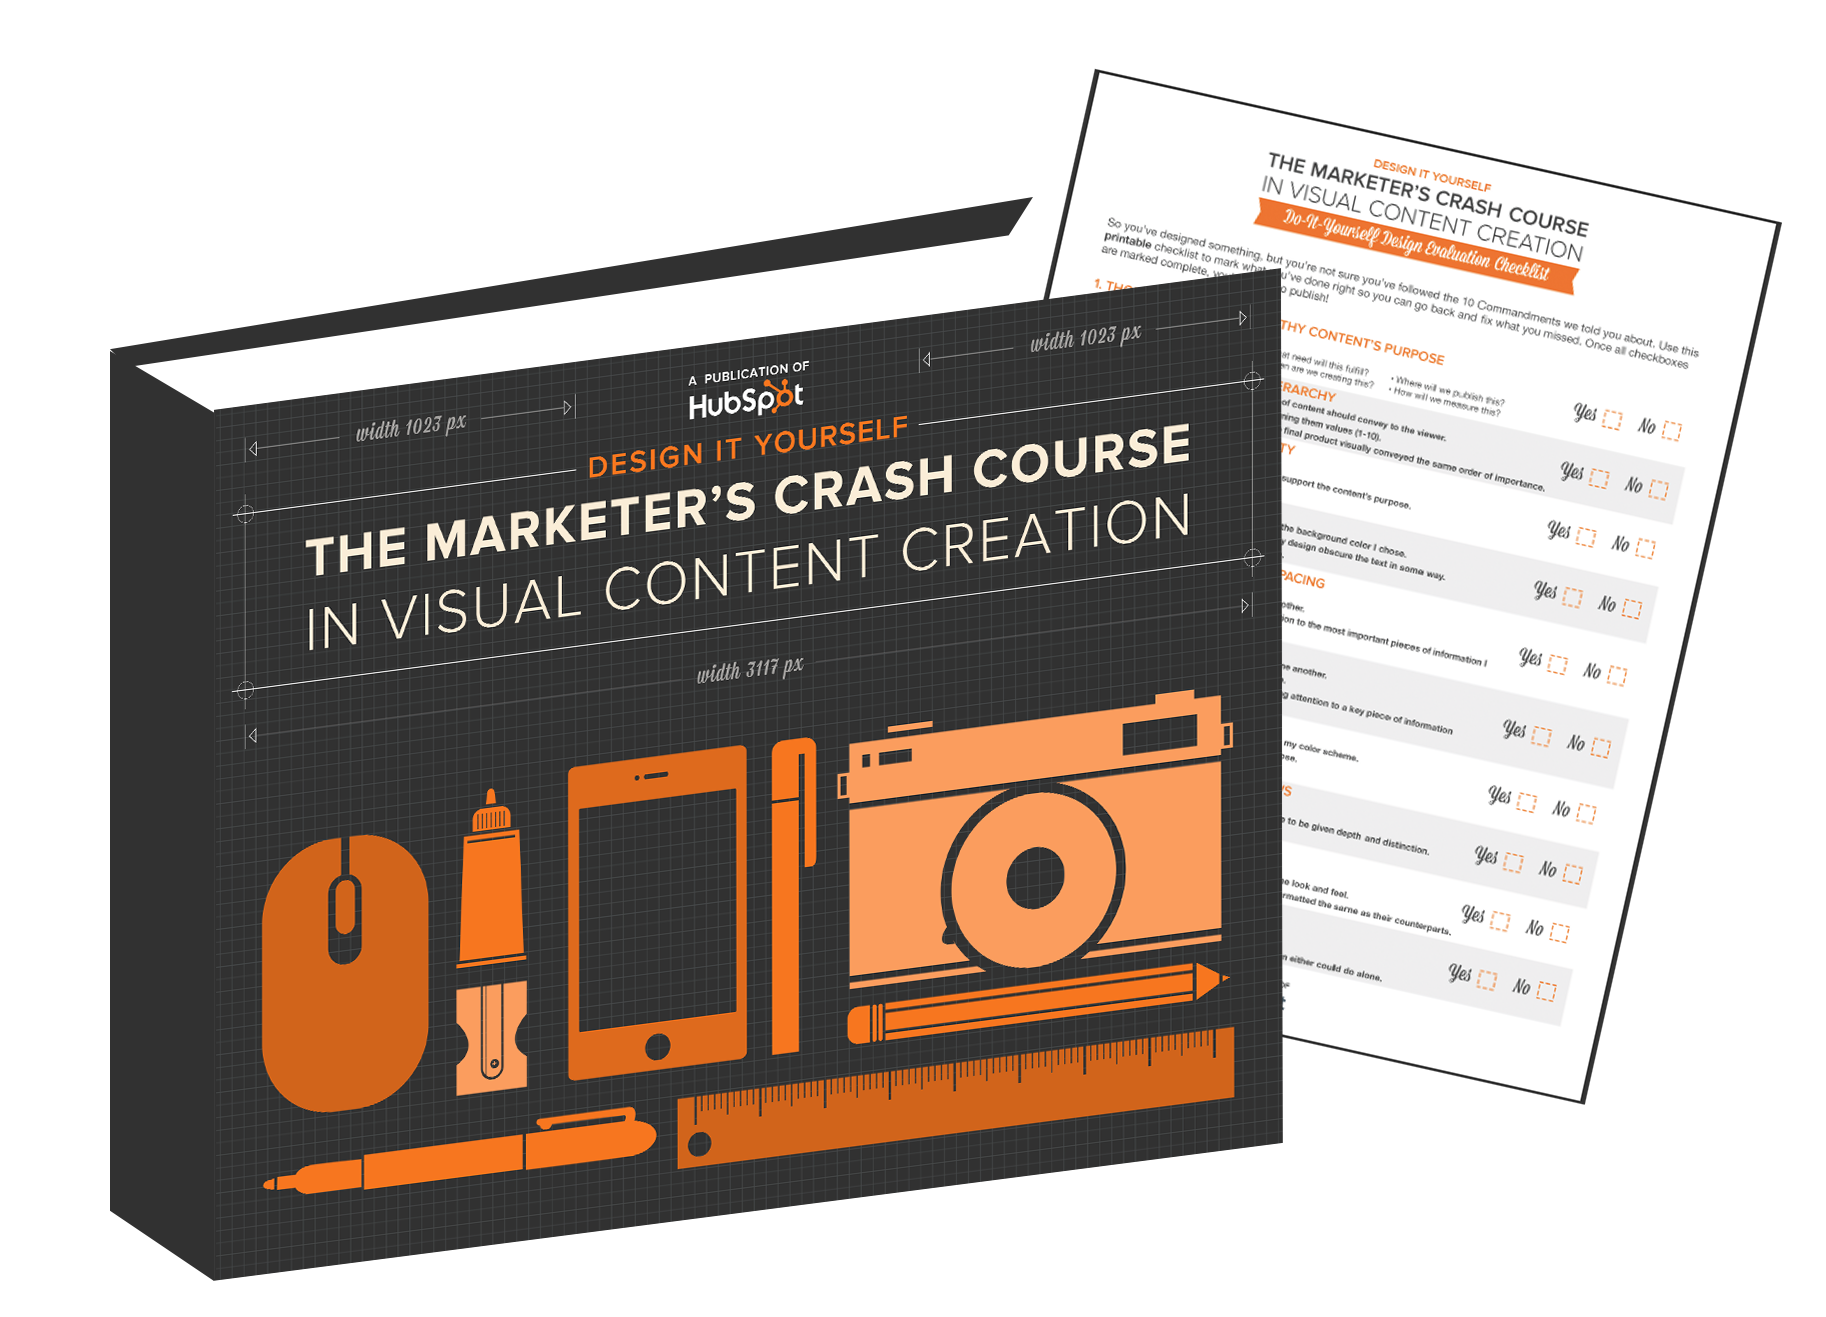 Design It Yourself: The Marketer's Crash Course in Visual Content Creation